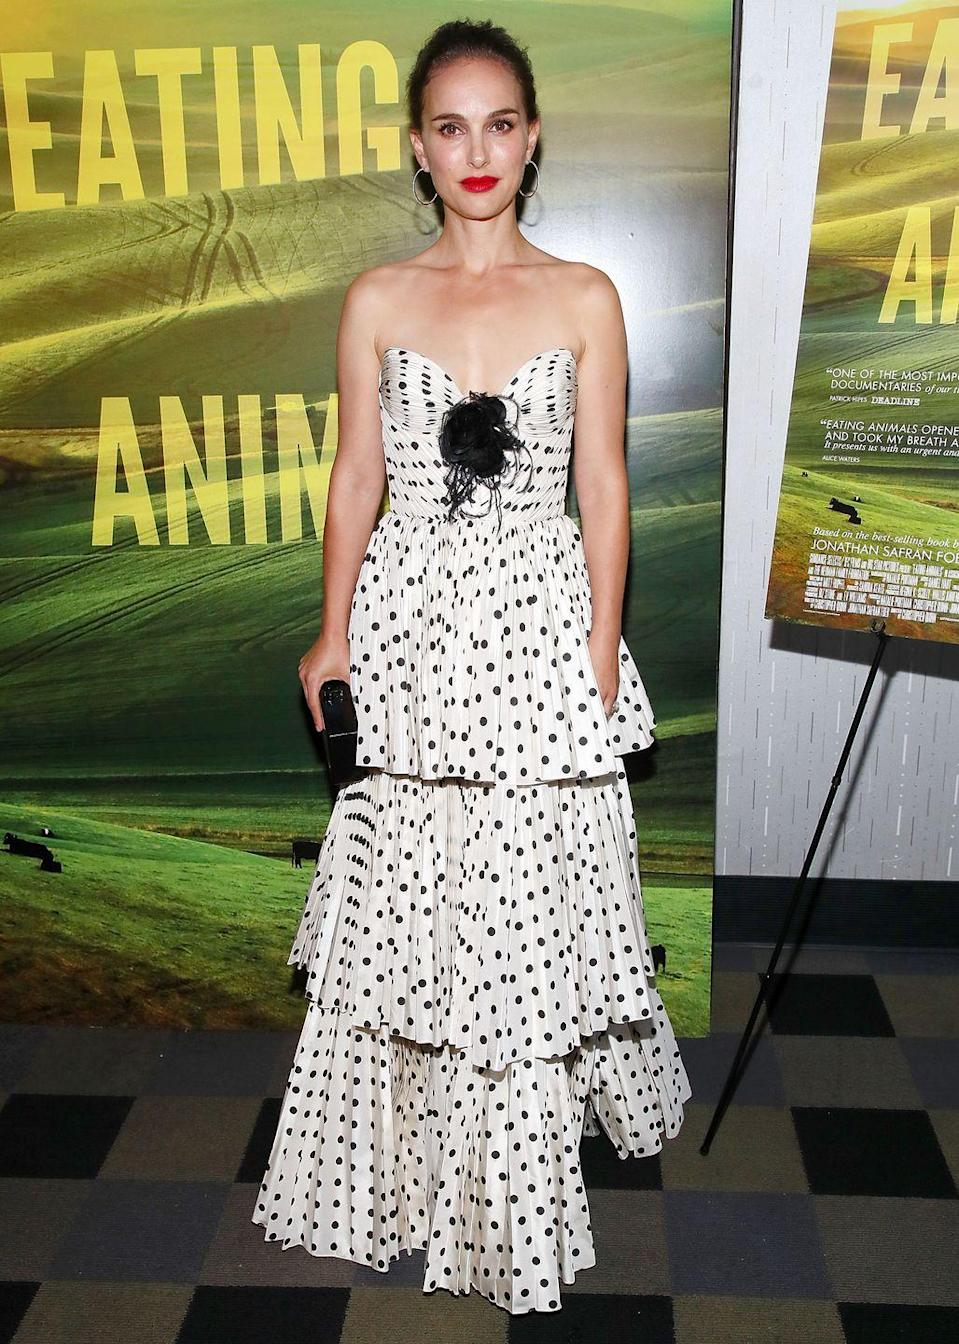 <p>The actress wore Miu Miu to the New York screening of <em>Eating Animals</em>.</p>